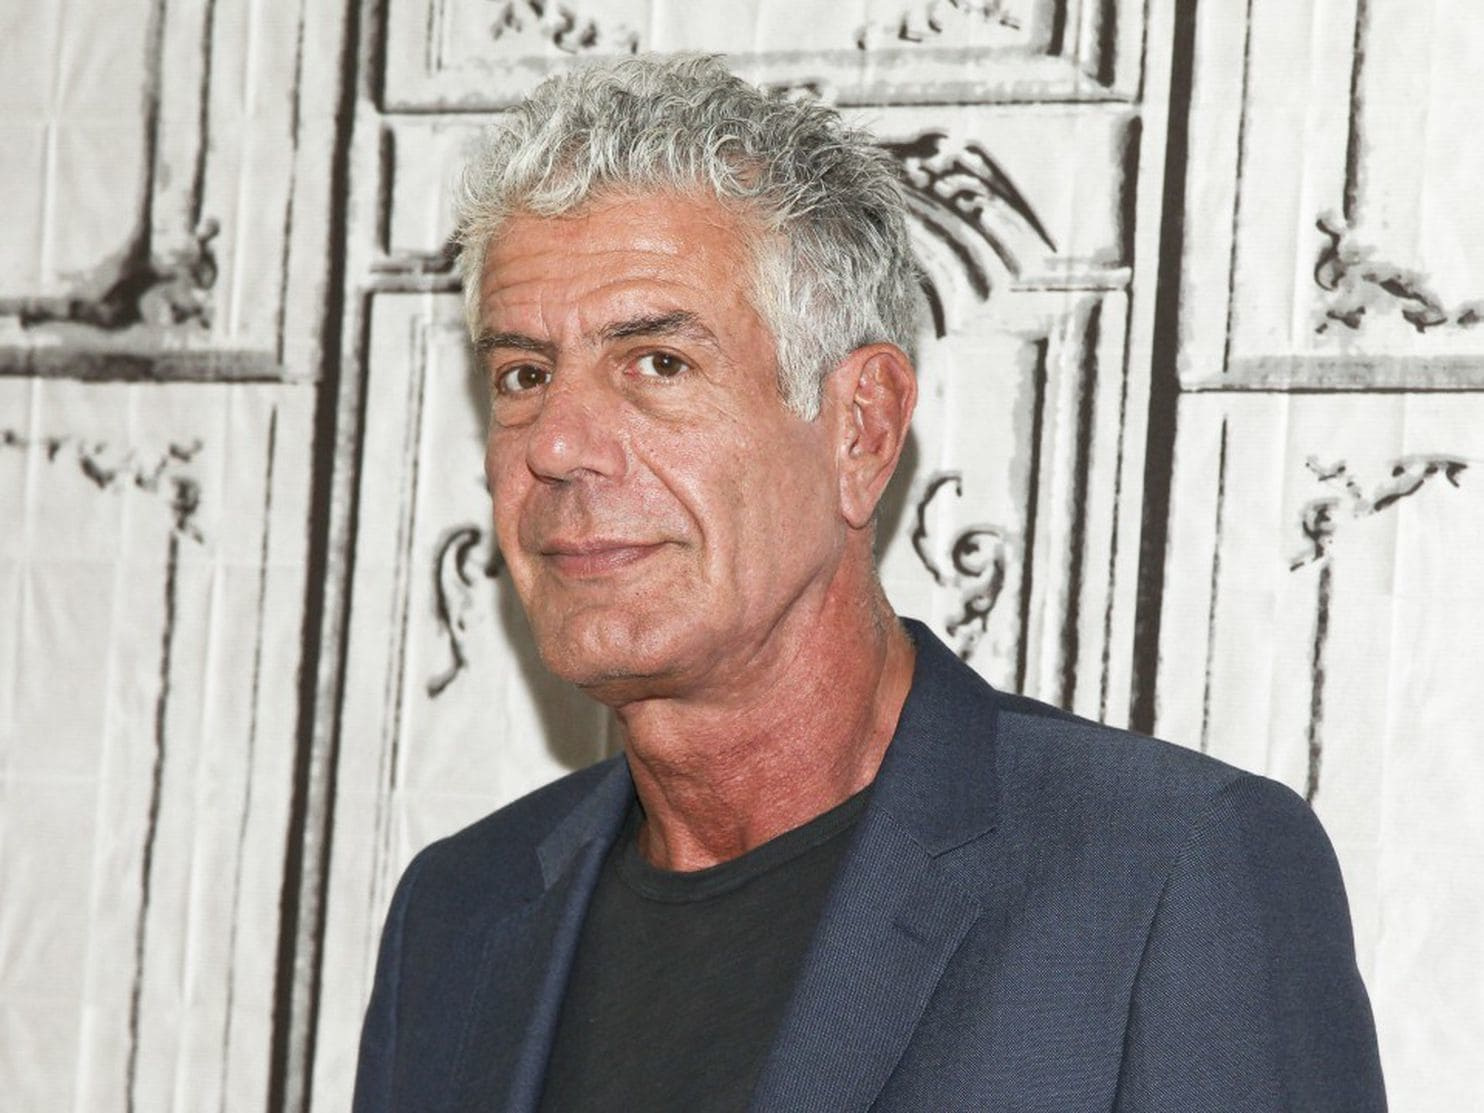 Anthony Bourdain showed the Middle East I know and love